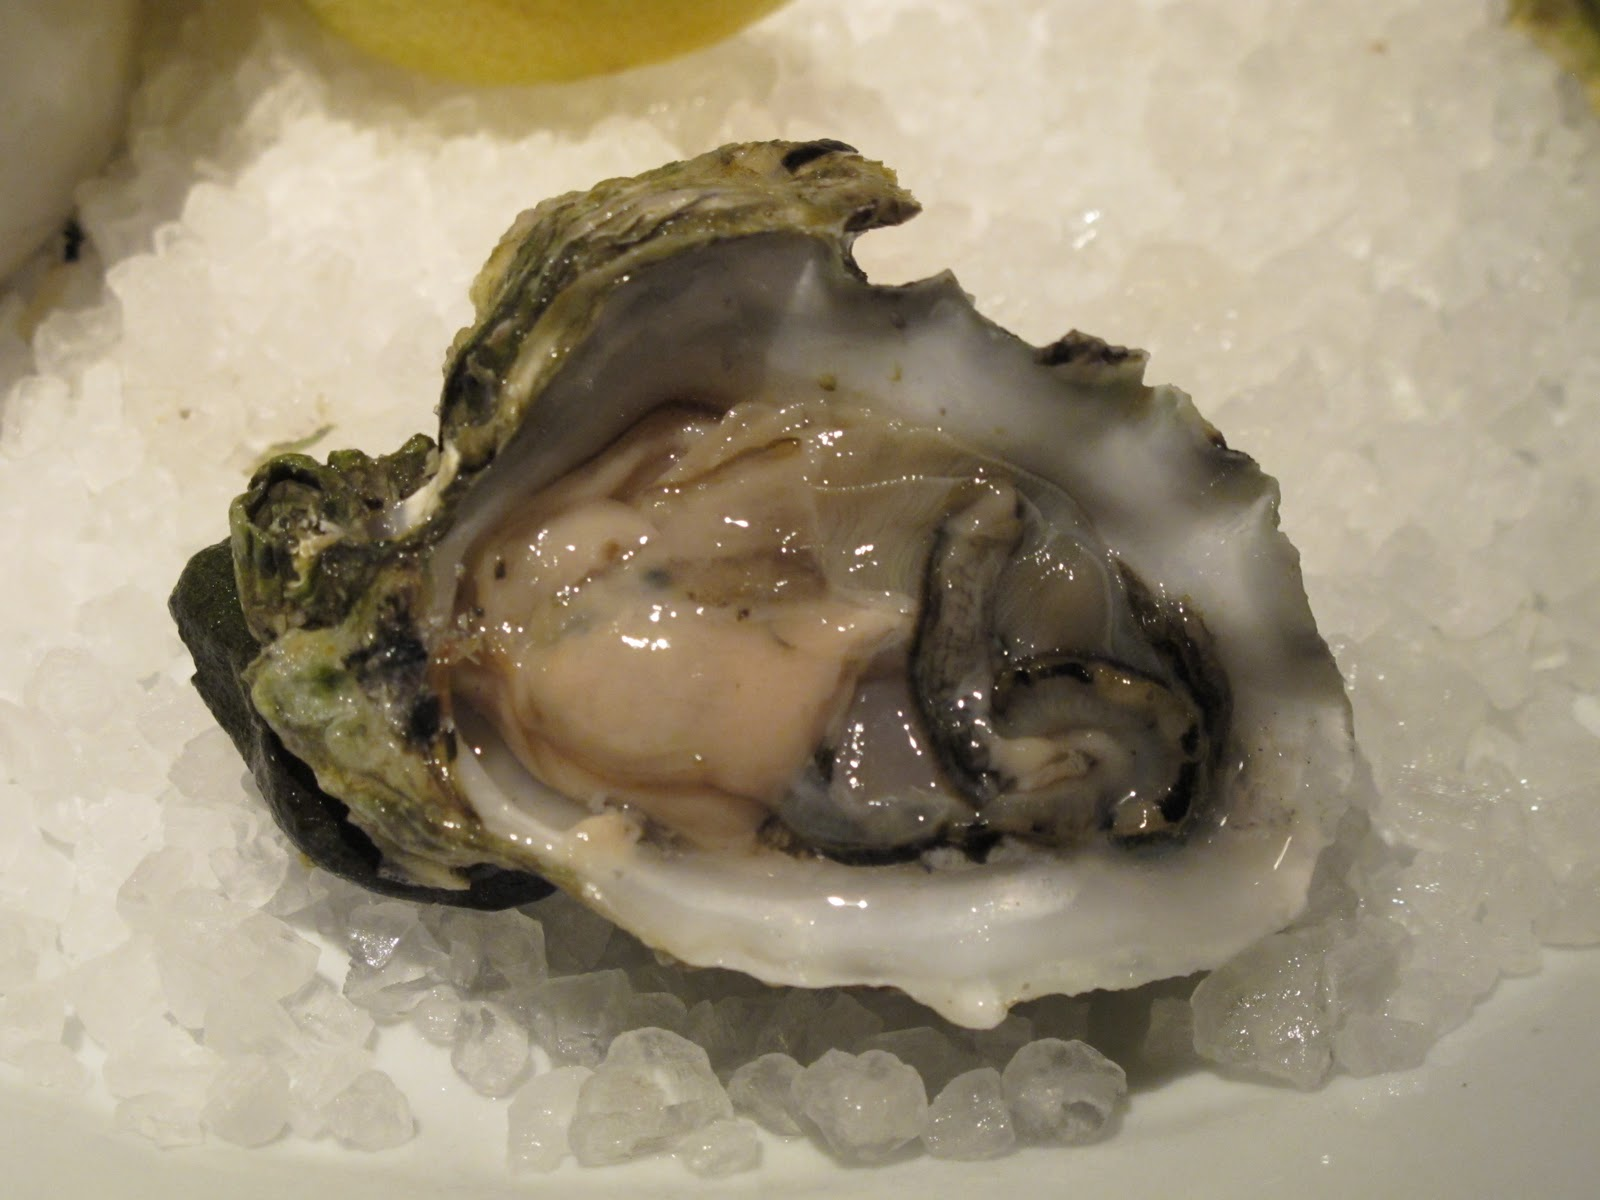 Live oysters with pearls inside - photo#25